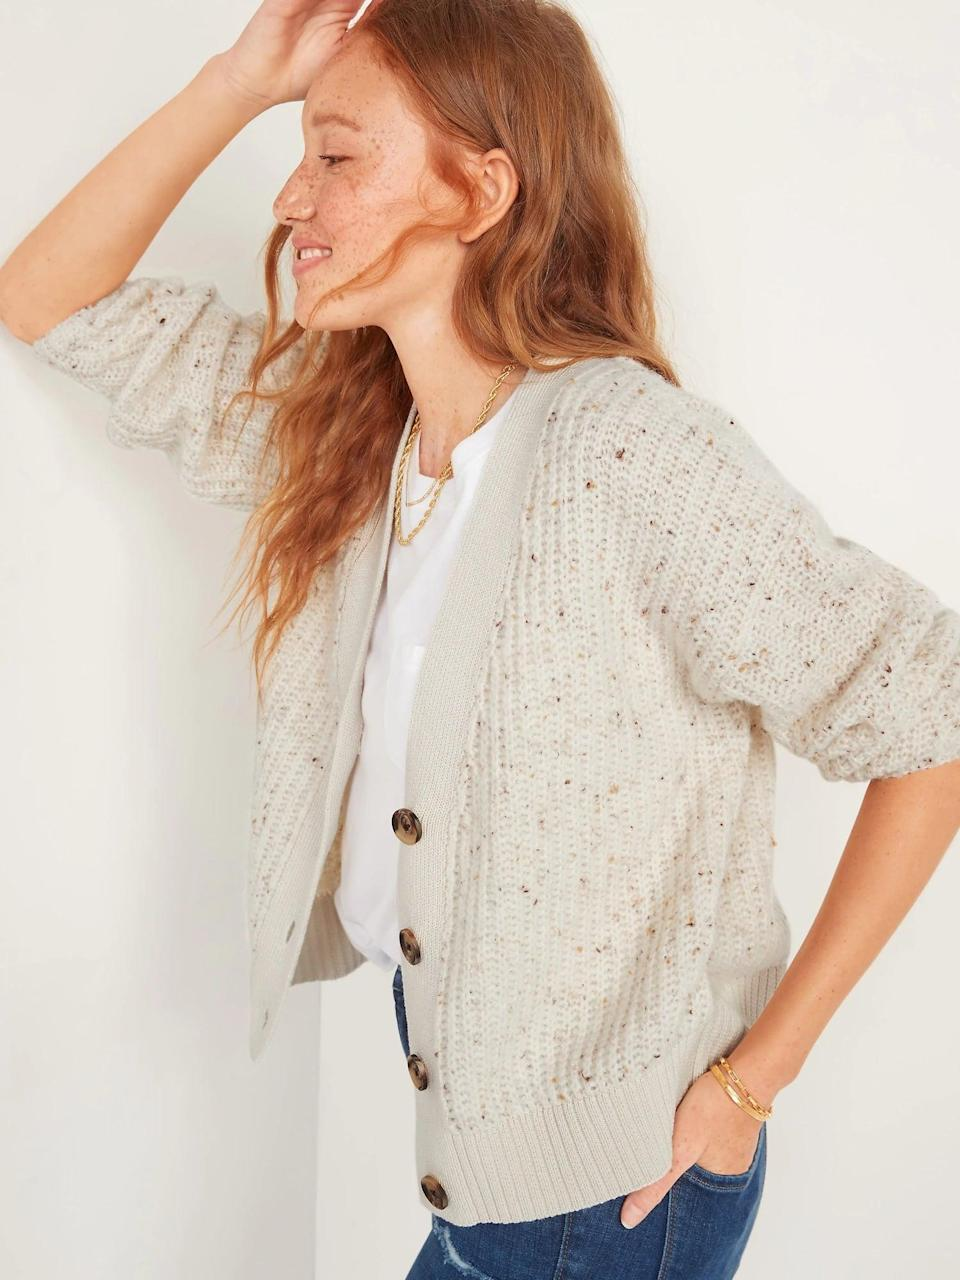 <p>Don't even worry about the temperature when this <span>Old Navy Slouchy Shaker-Stitch Speckled Cardigan Sweater</span> ($45) is around. After all, it can be dressed up over pants in a chilly office or worn with jeans for brunch alfresco.</p>